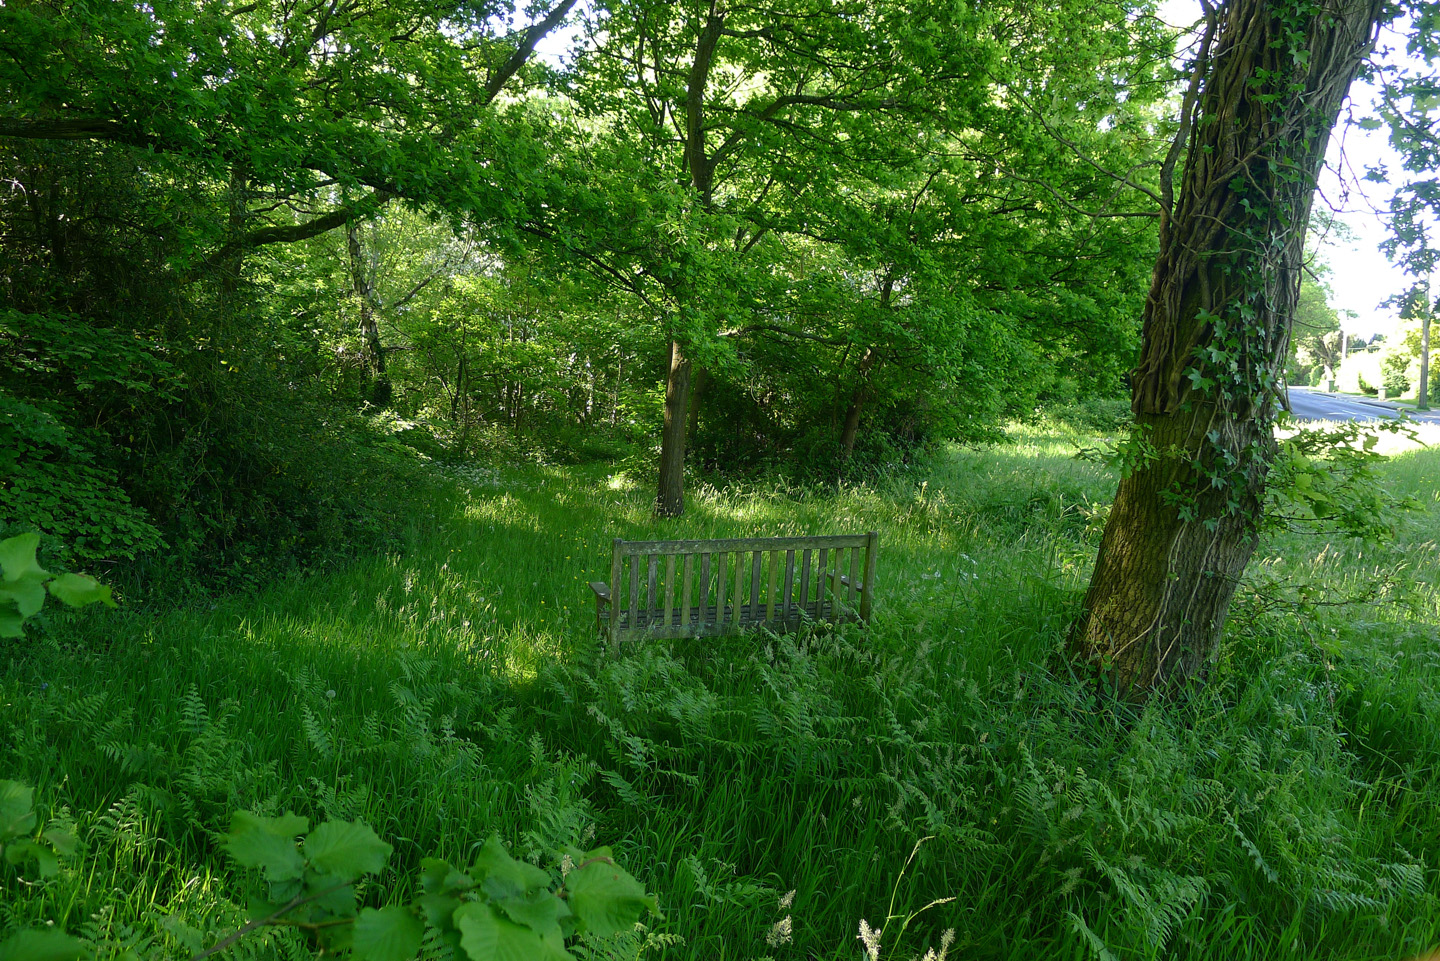 bench in a grassed area